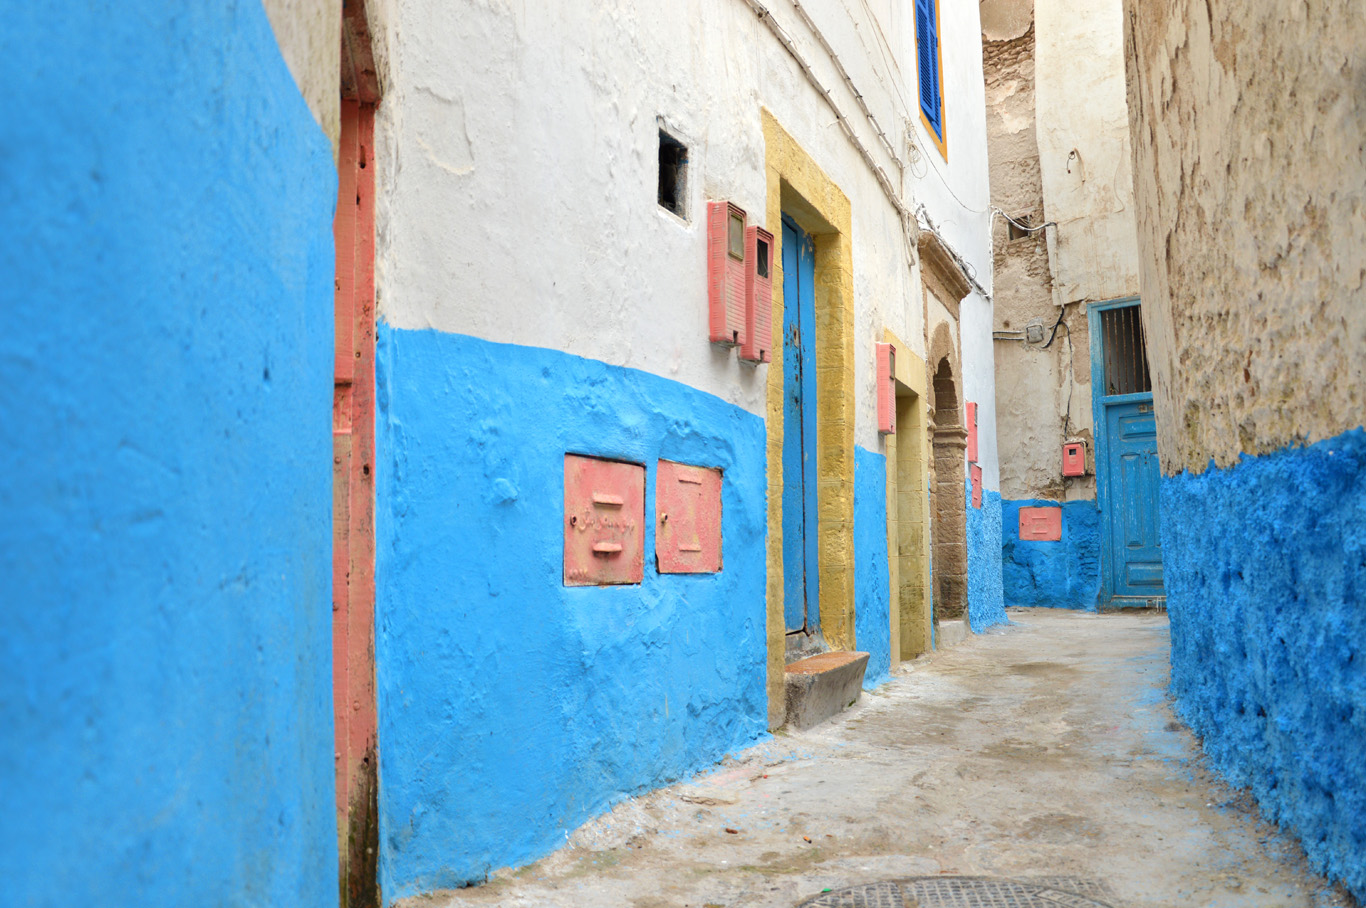 Morocco Adventurous Travels Adventure Travel Best Beaches - Old town morocco entirely blue